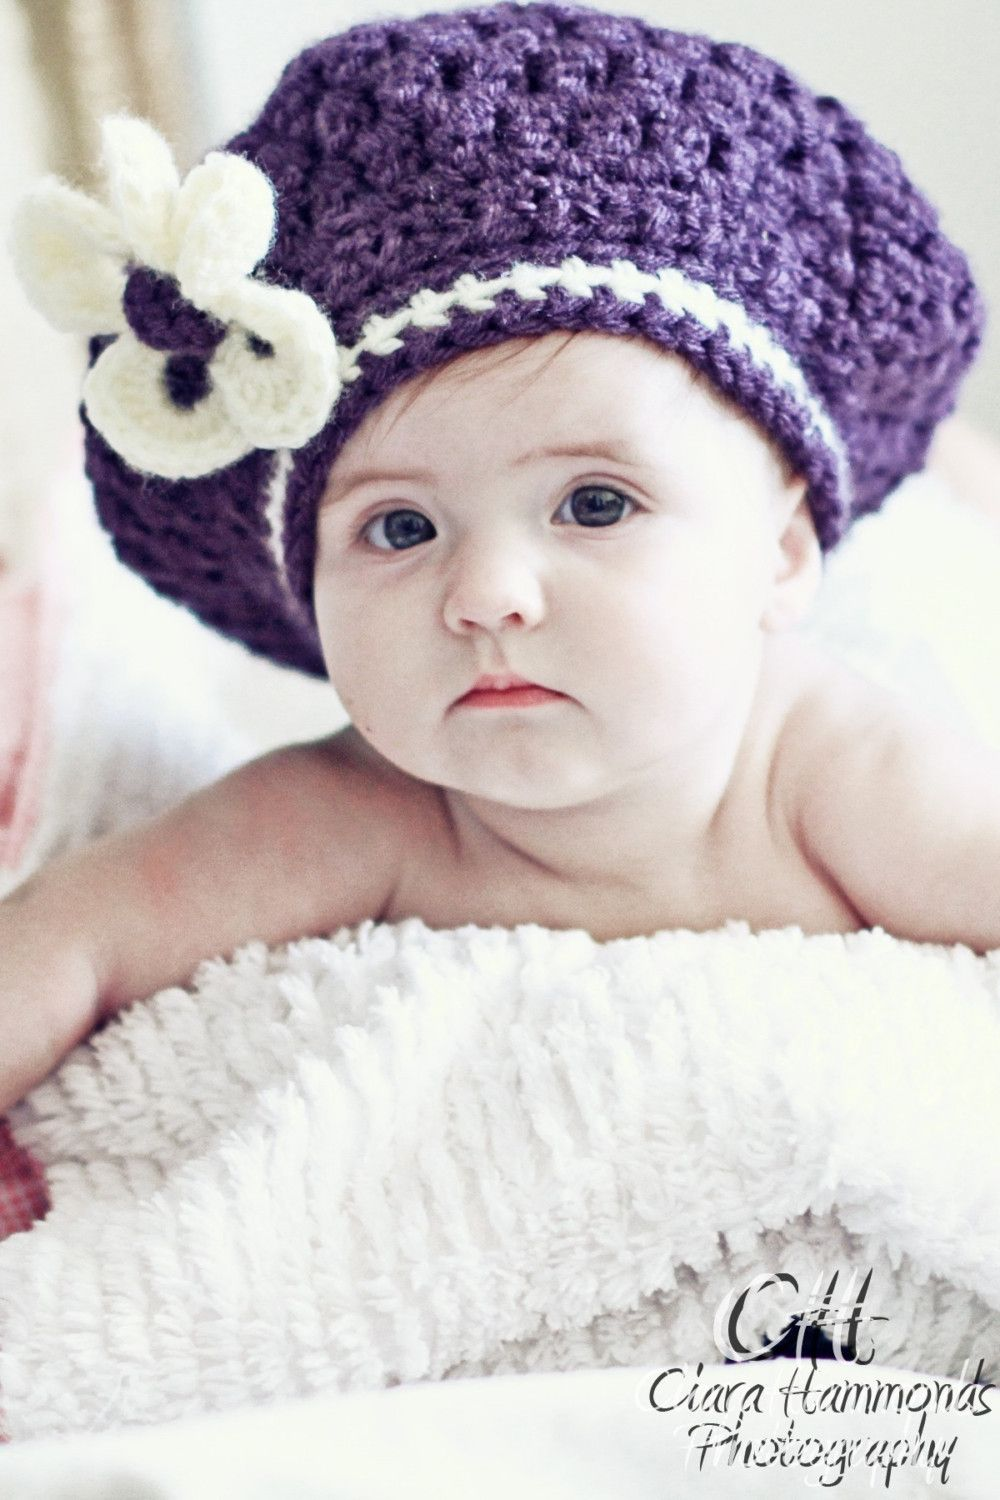 Baby beret crochet pattern free patterns baby pinterest slouchy beret hat pattern pdf crochet includes 4 sizes and flower bankloansurffo Choice Image